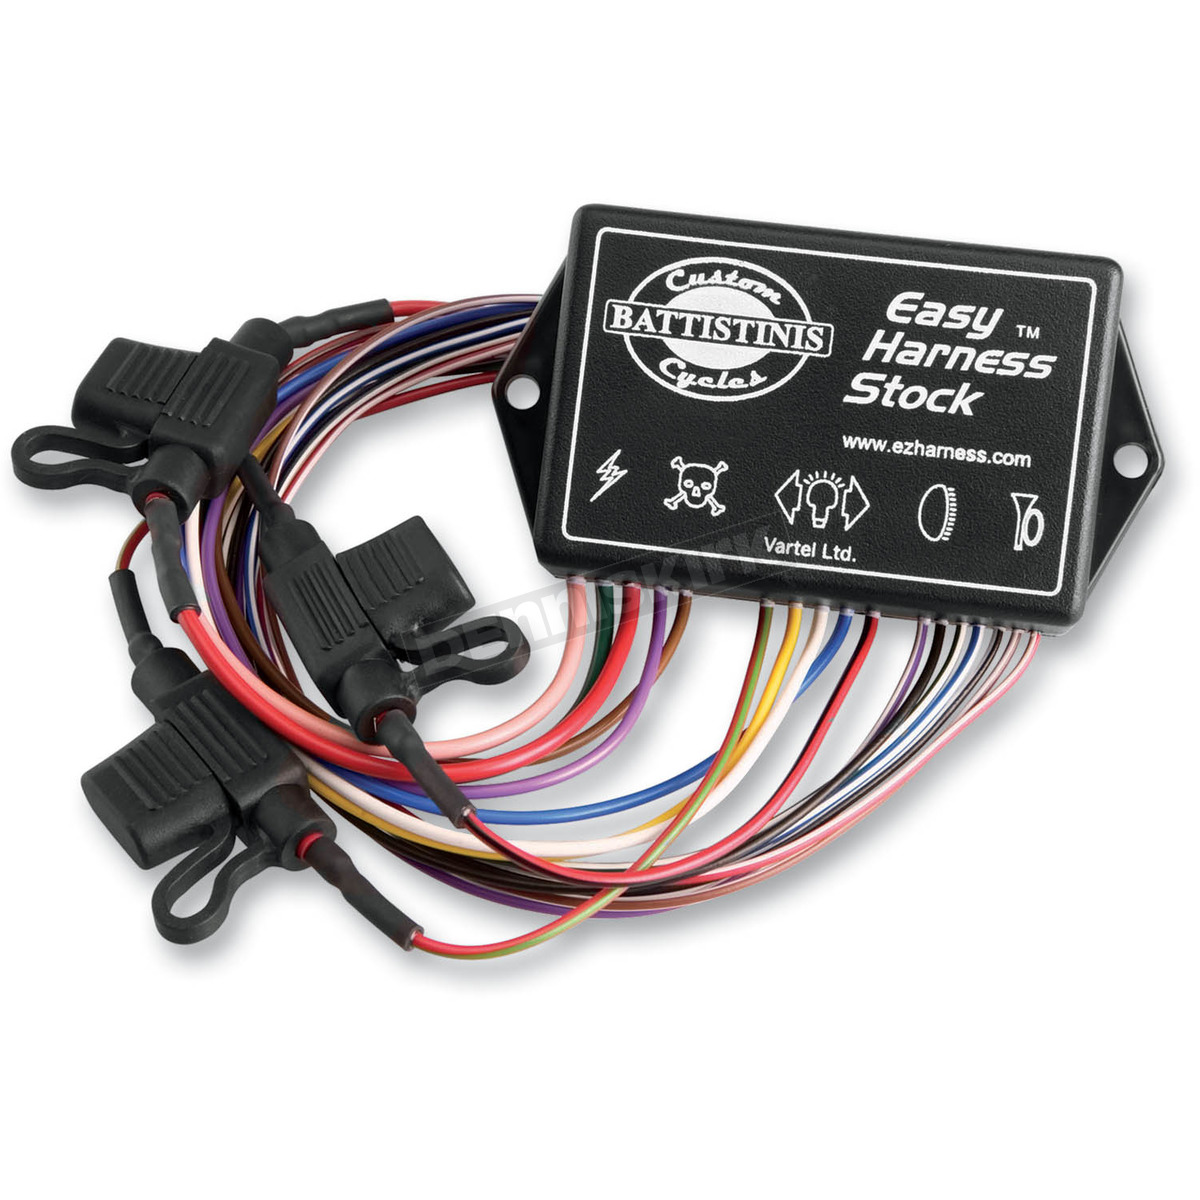 battistinis wiring harness controller 15 240 harley. Black Bedroom Furniture Sets. Home Design Ideas